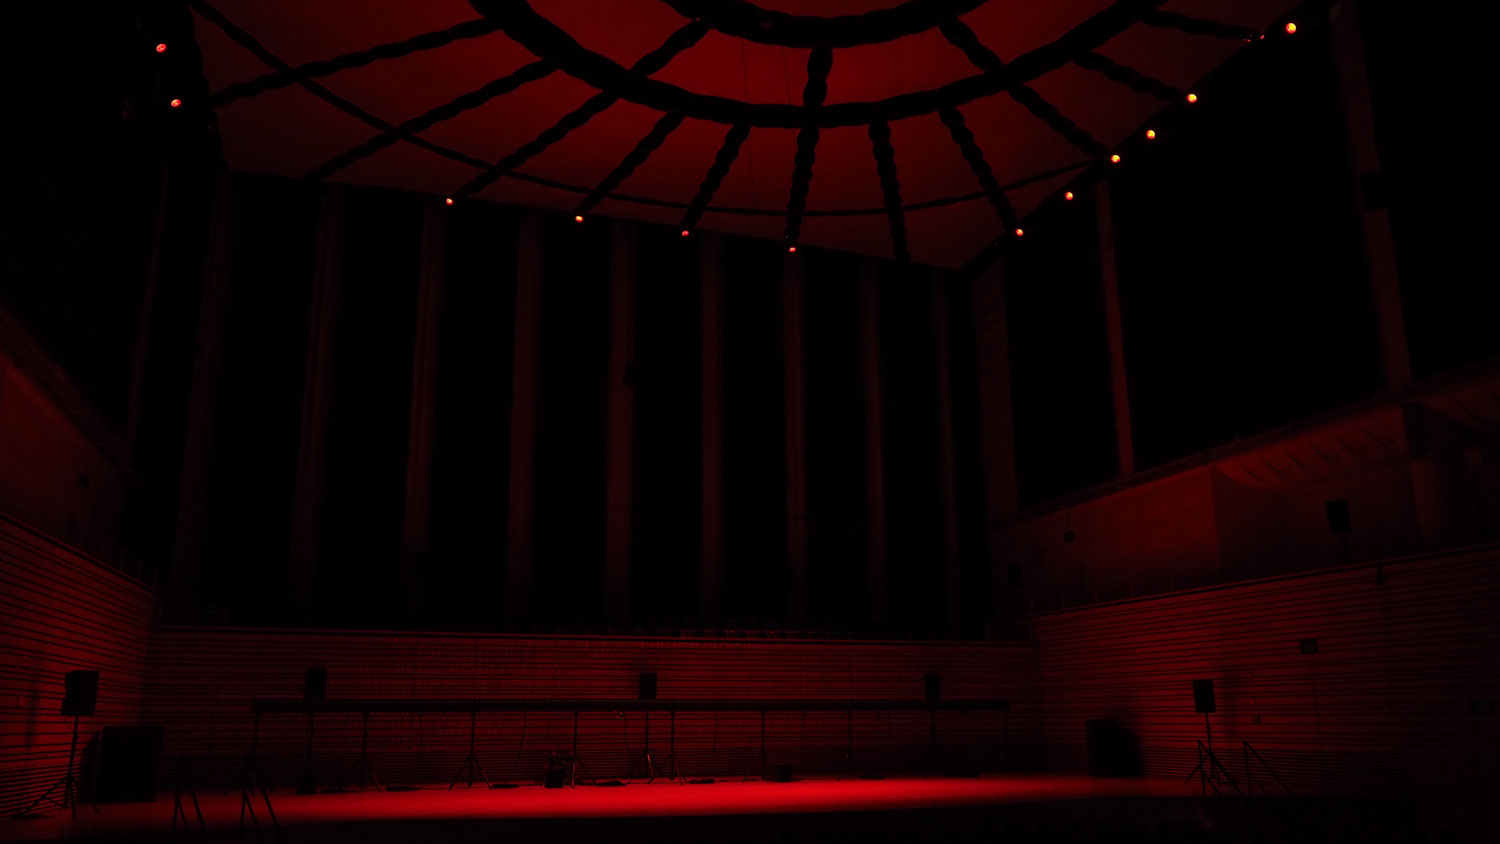 the concert hall bathed in deep red